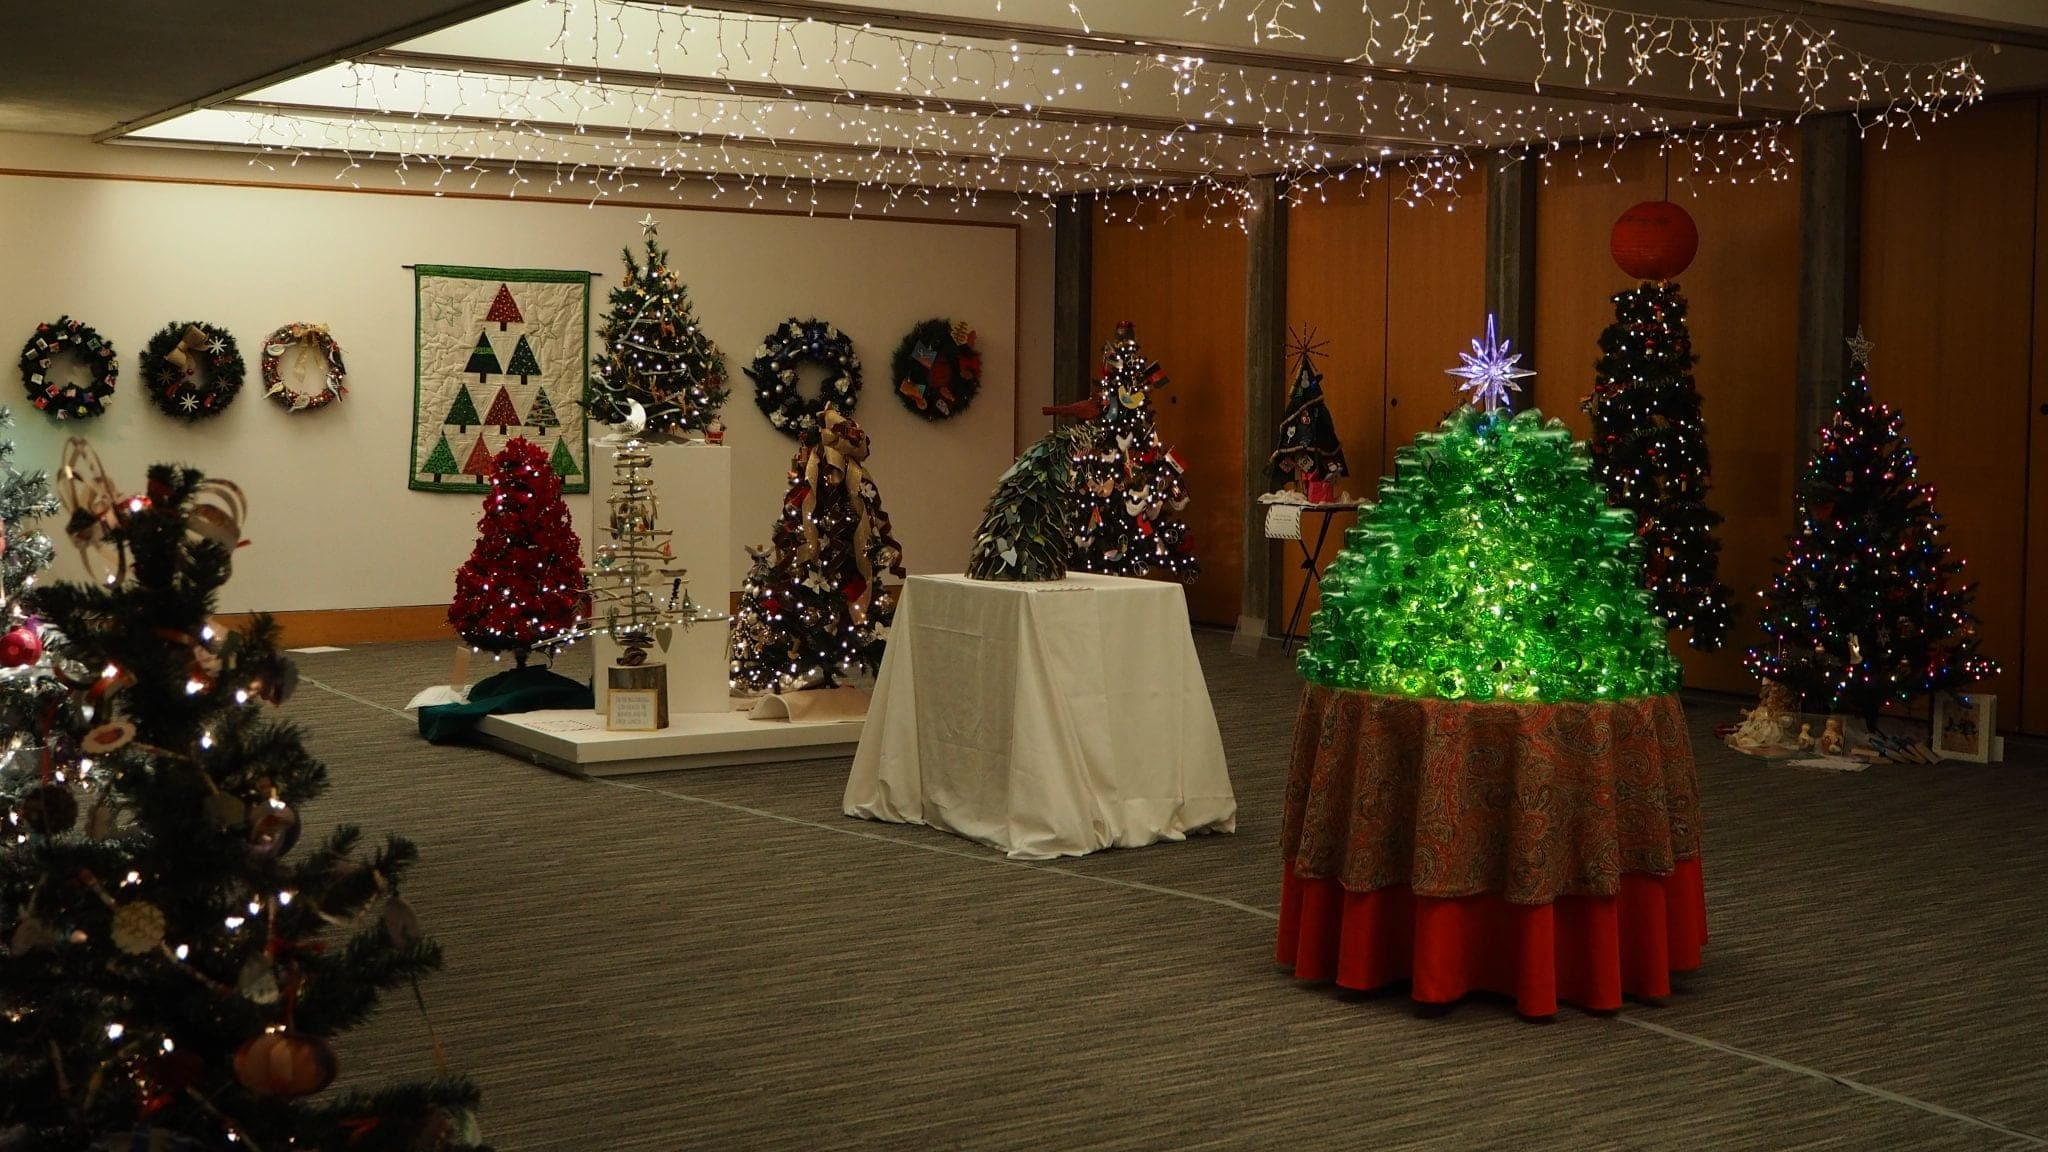 Christmas trees at Festival of Trees